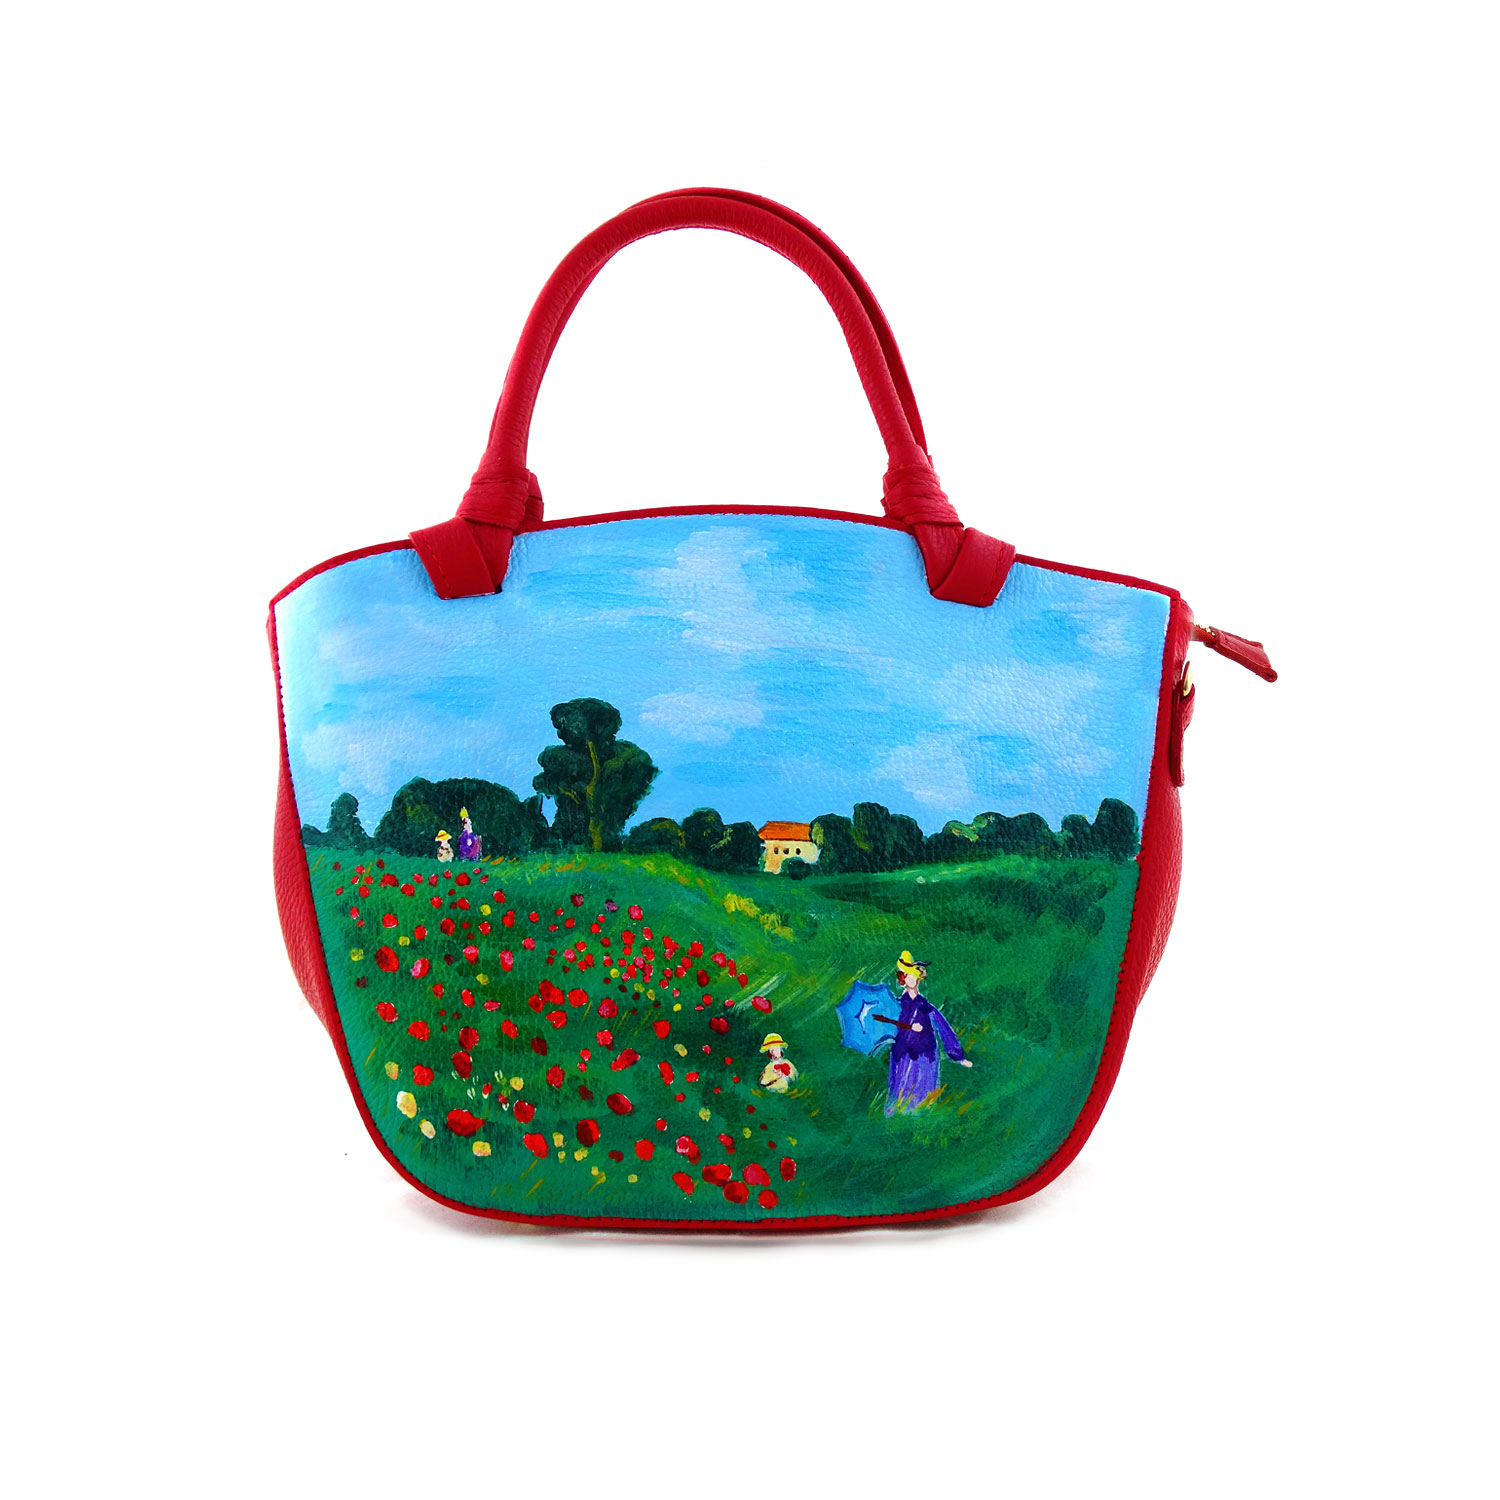 Hand-painted bag - Poppies by Monet